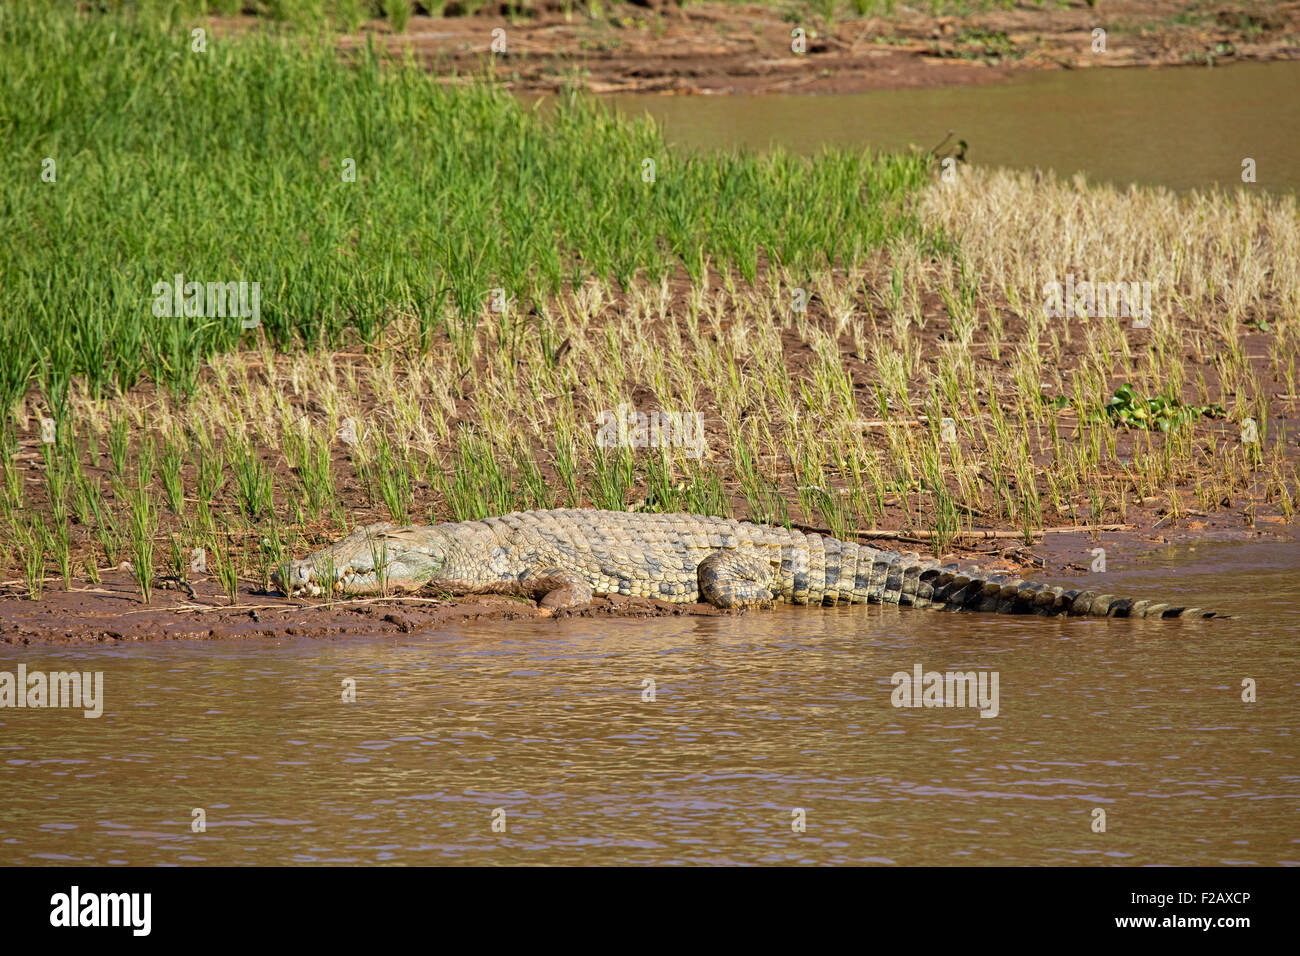 Nile crocodile (Crocodylus niloticus) sleeping in rice paddy on riverbank of Tsiribihina / Tsiribinha river, Menabe, - Stock Image